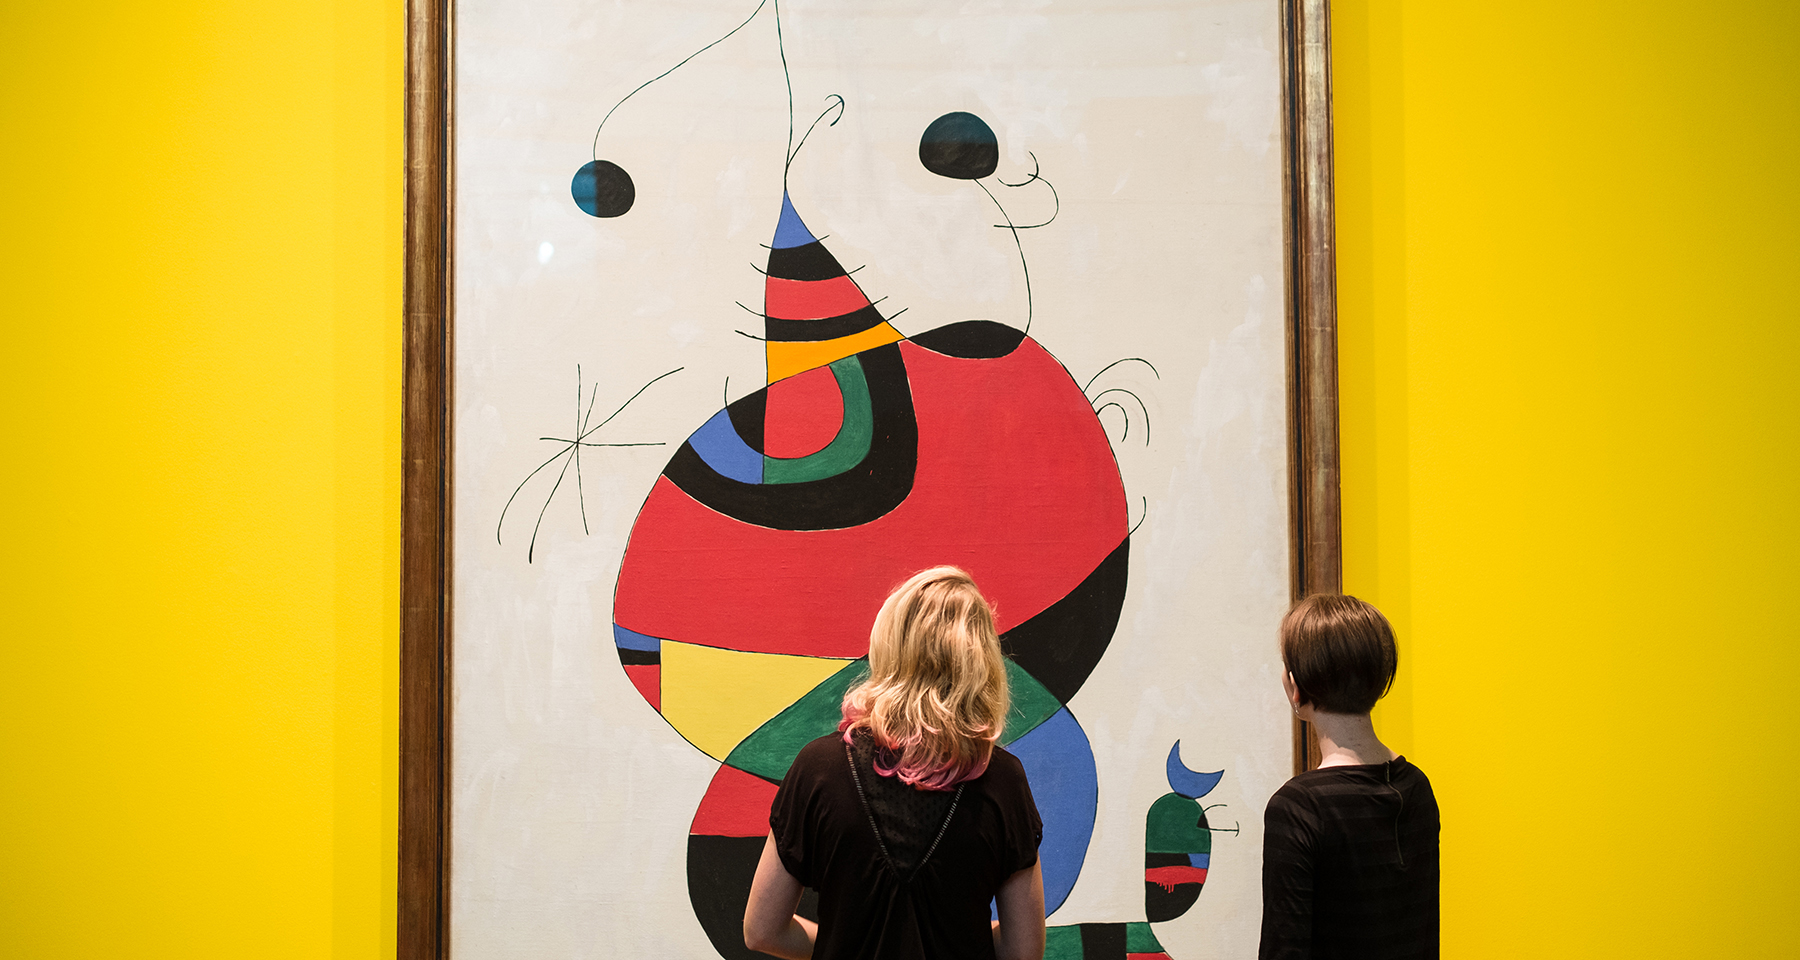 Miró: The Art of Seeing |  A Conversation with Dr. William Chiego